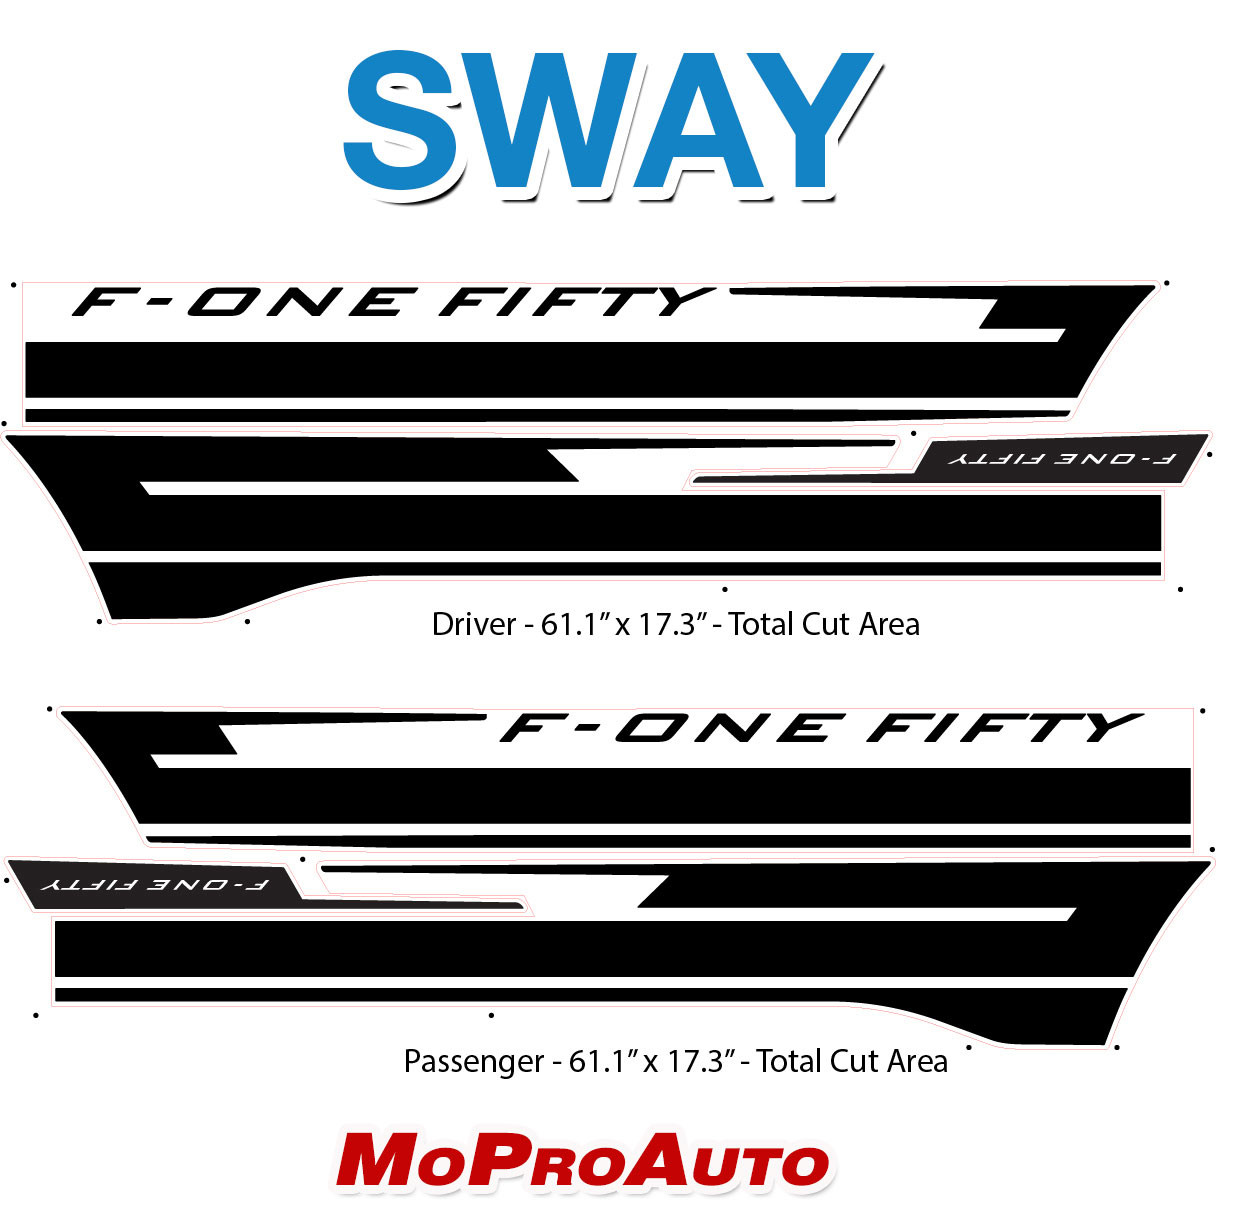 2021 Ford F-150 Side Body Decals Mid Panel Stripes Vinyl Graphics Kit